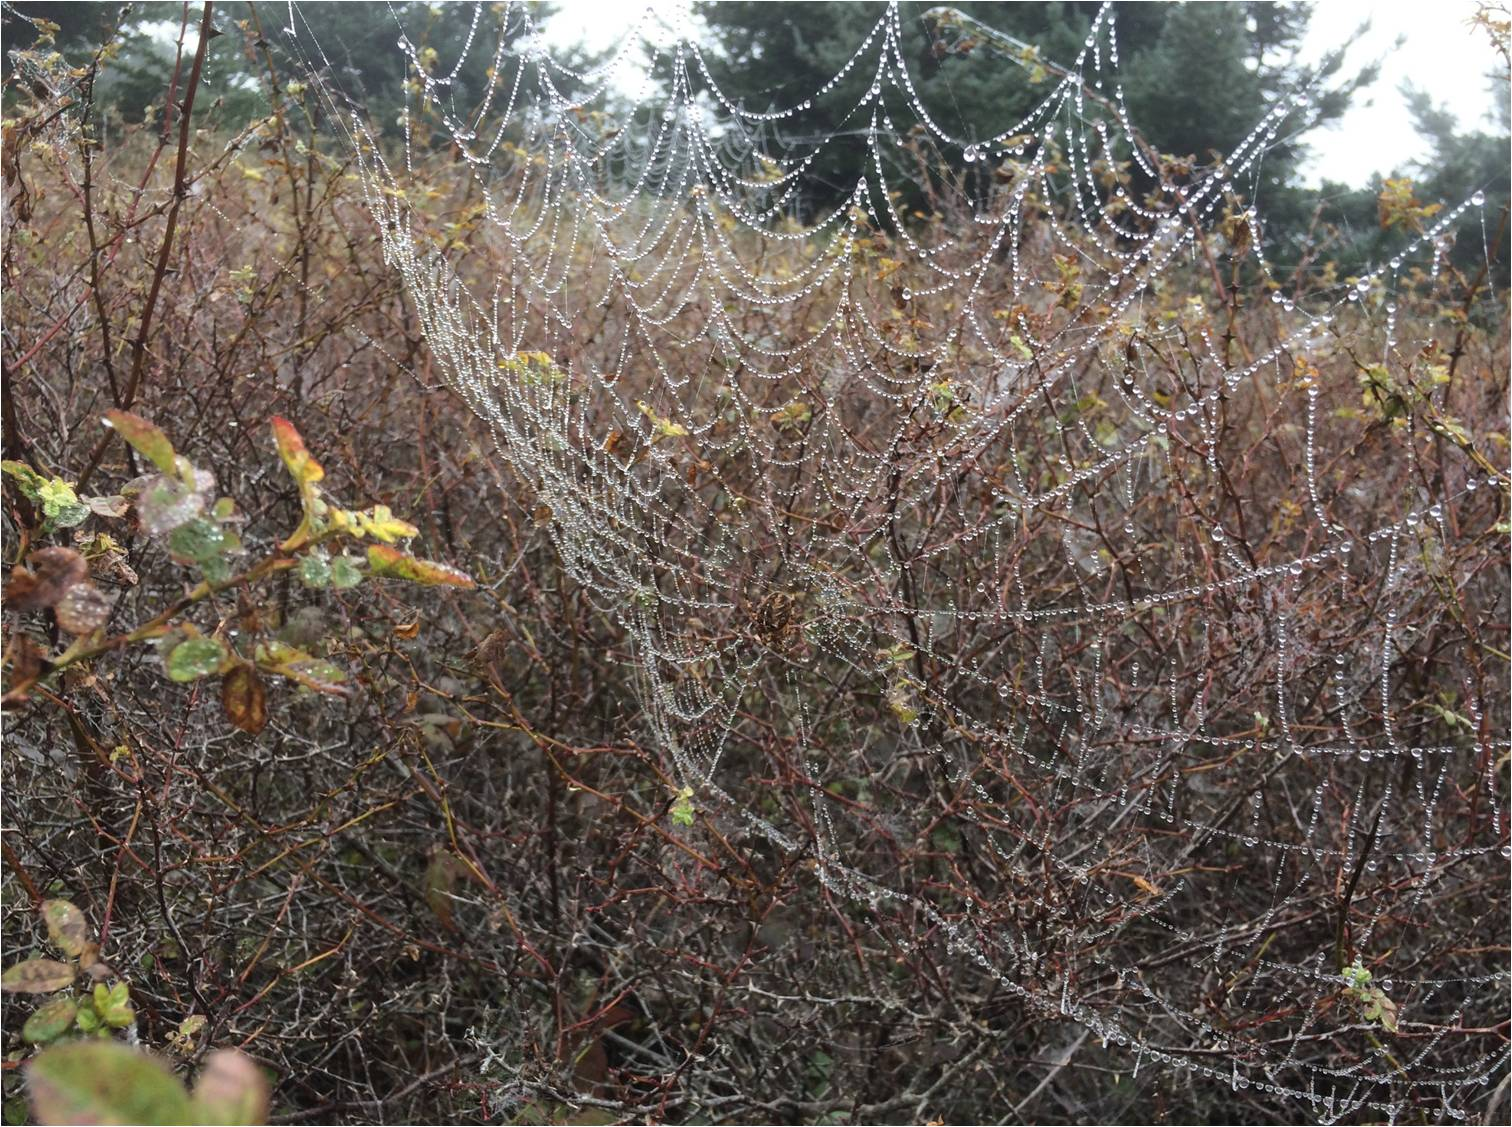 3-Spider-web-David-Berger